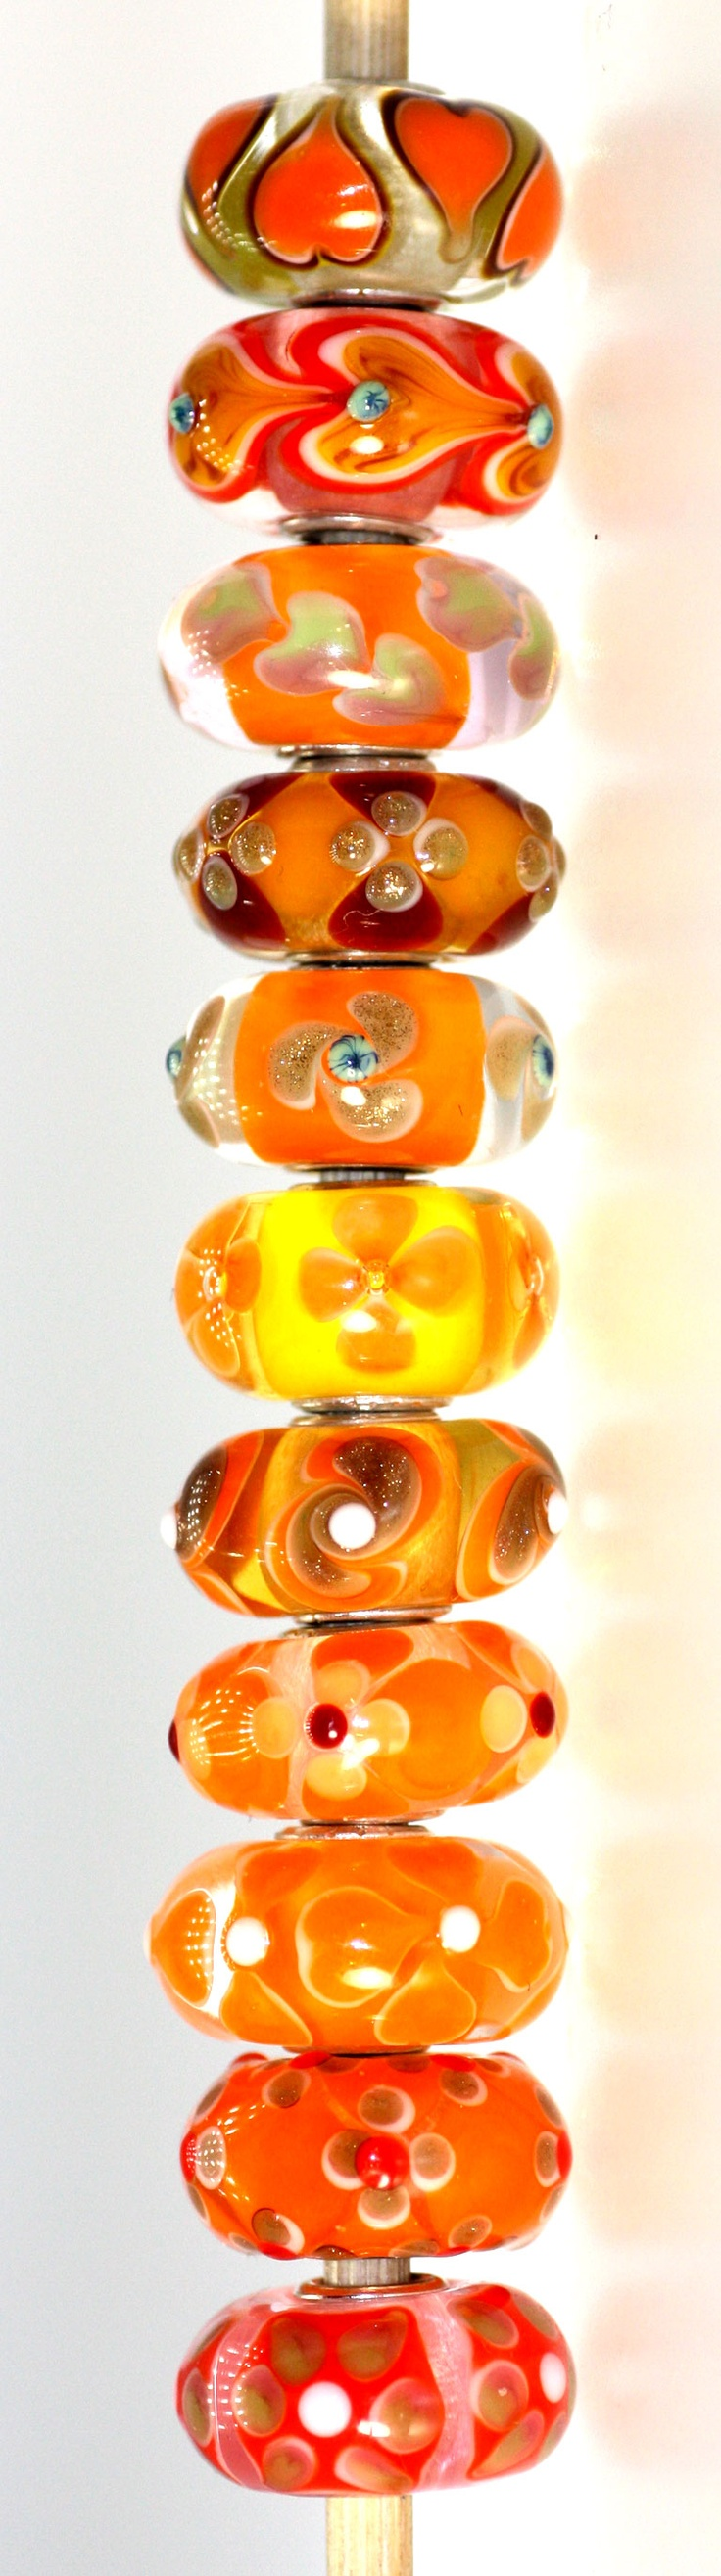 The NEW Orange Uniques are a treat for the eye.  Orange is hot for 2012.  http://www.trollbeadsgallery.com/categories/All-Unique-Beads/Glass-Unique-Beads/